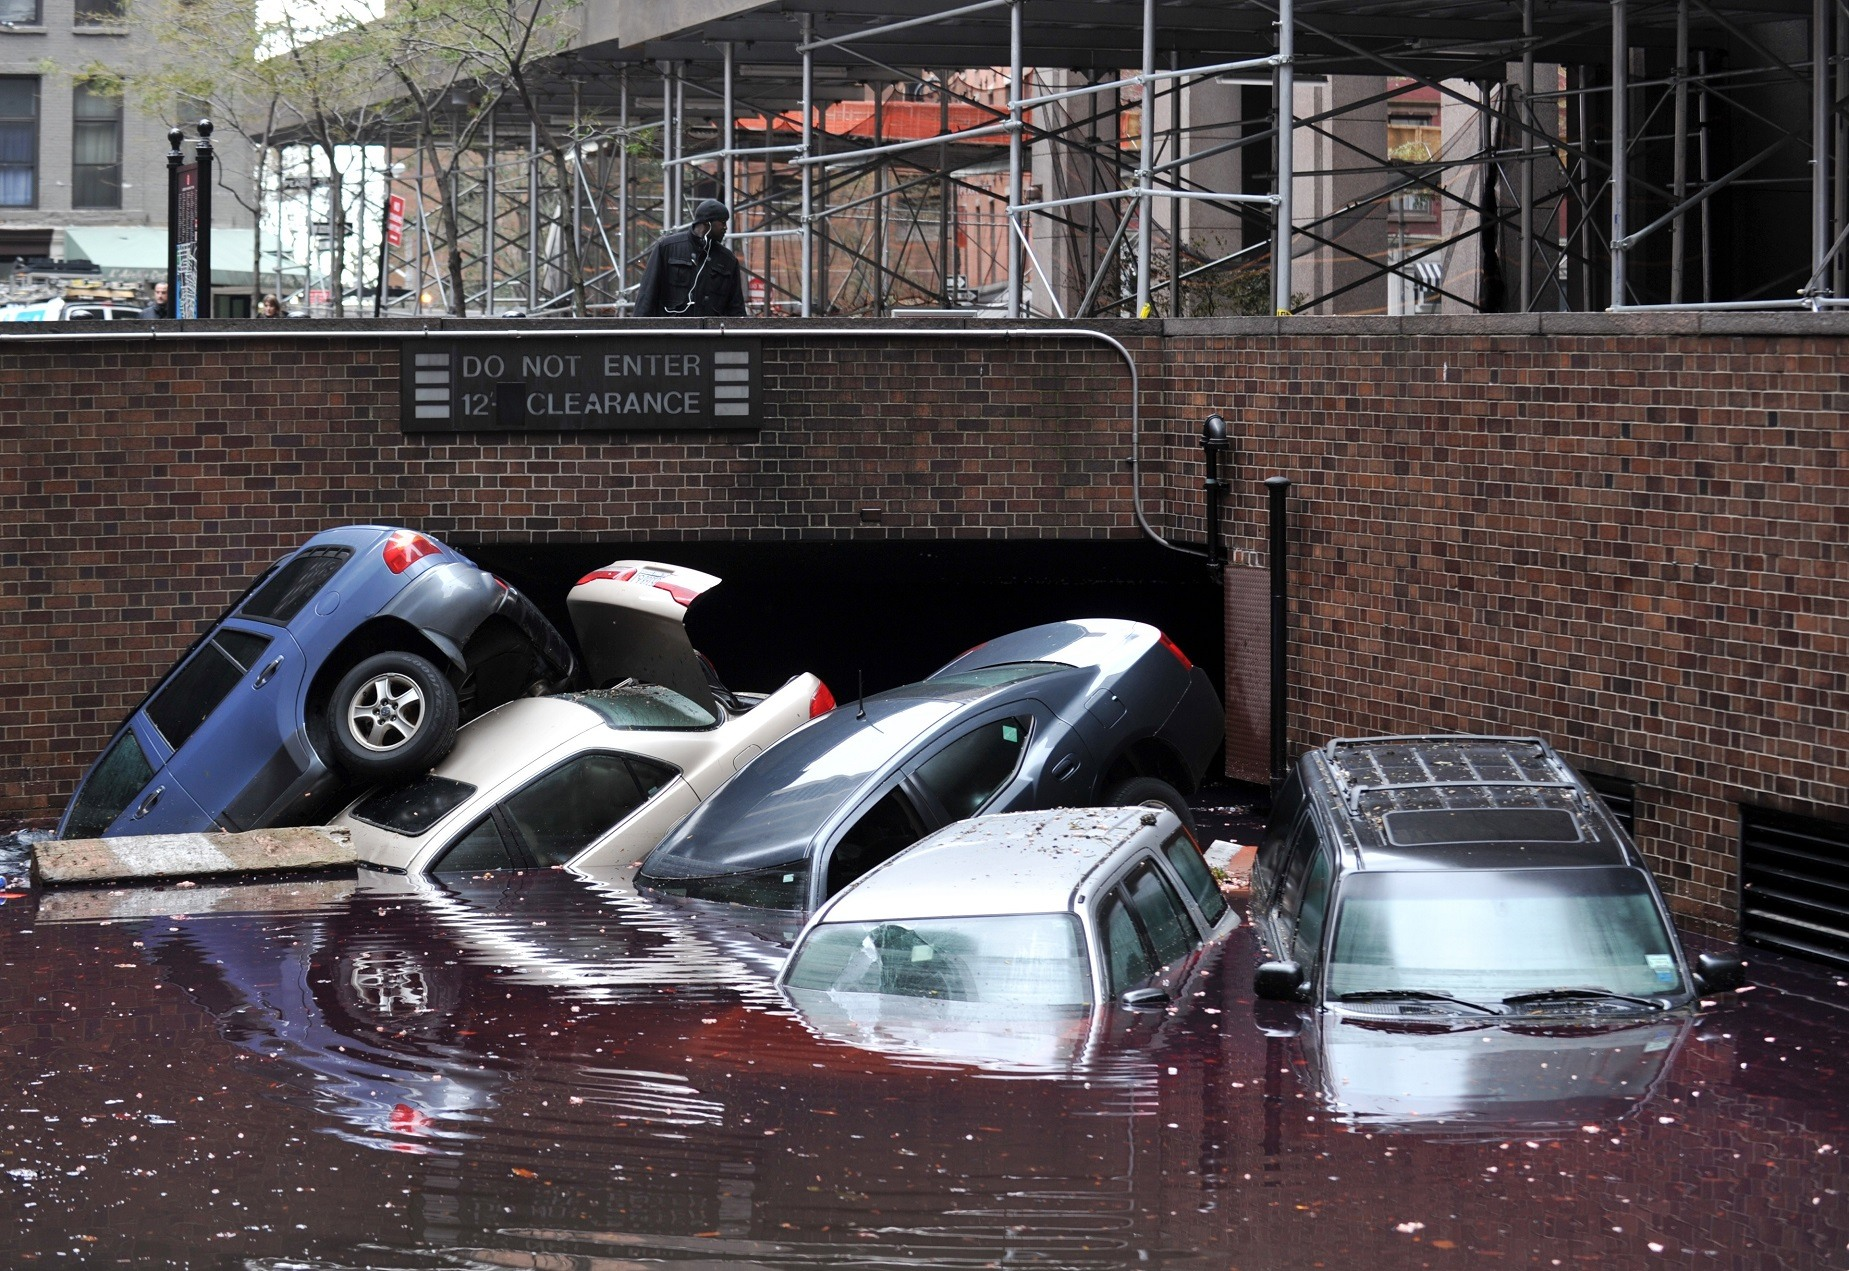 Hurricane damage from superstorm Sandy in Manhattan, NY -- That's not how cars are supposed to be